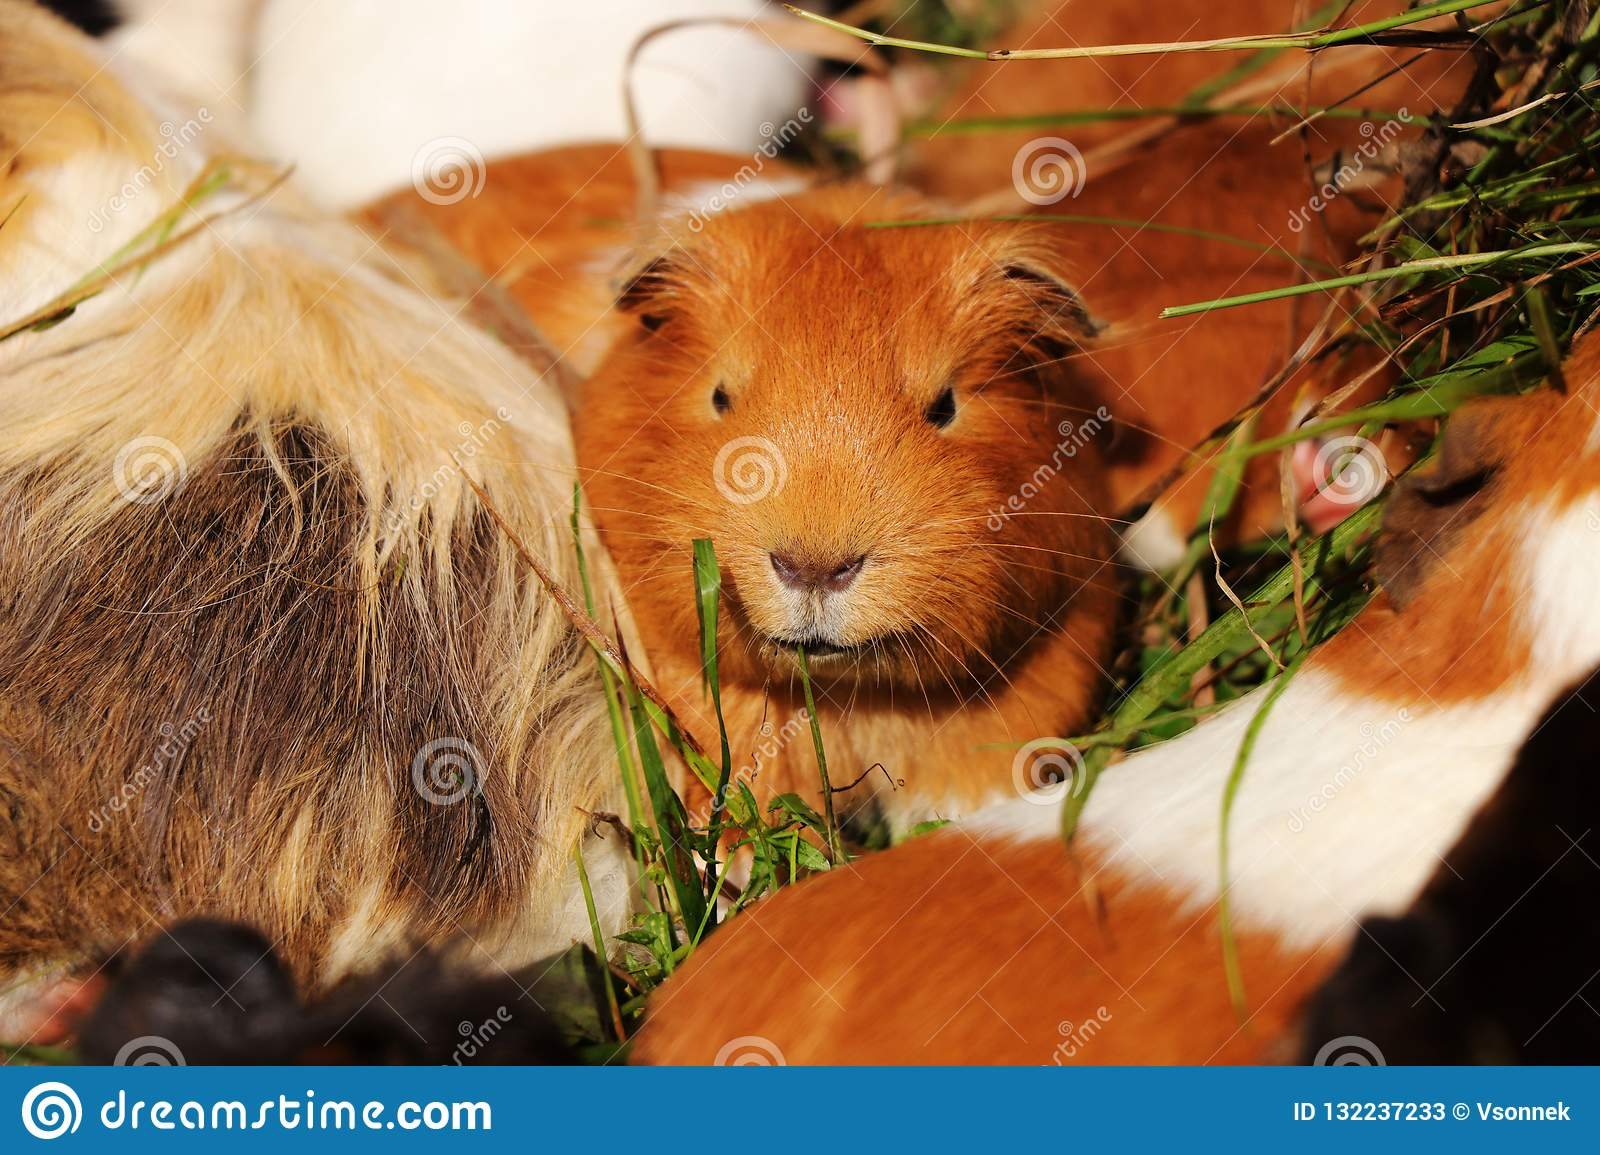 A rusty guinea pig lying in grass with other guys. He is watching some buddies. Leader of gunea pigs